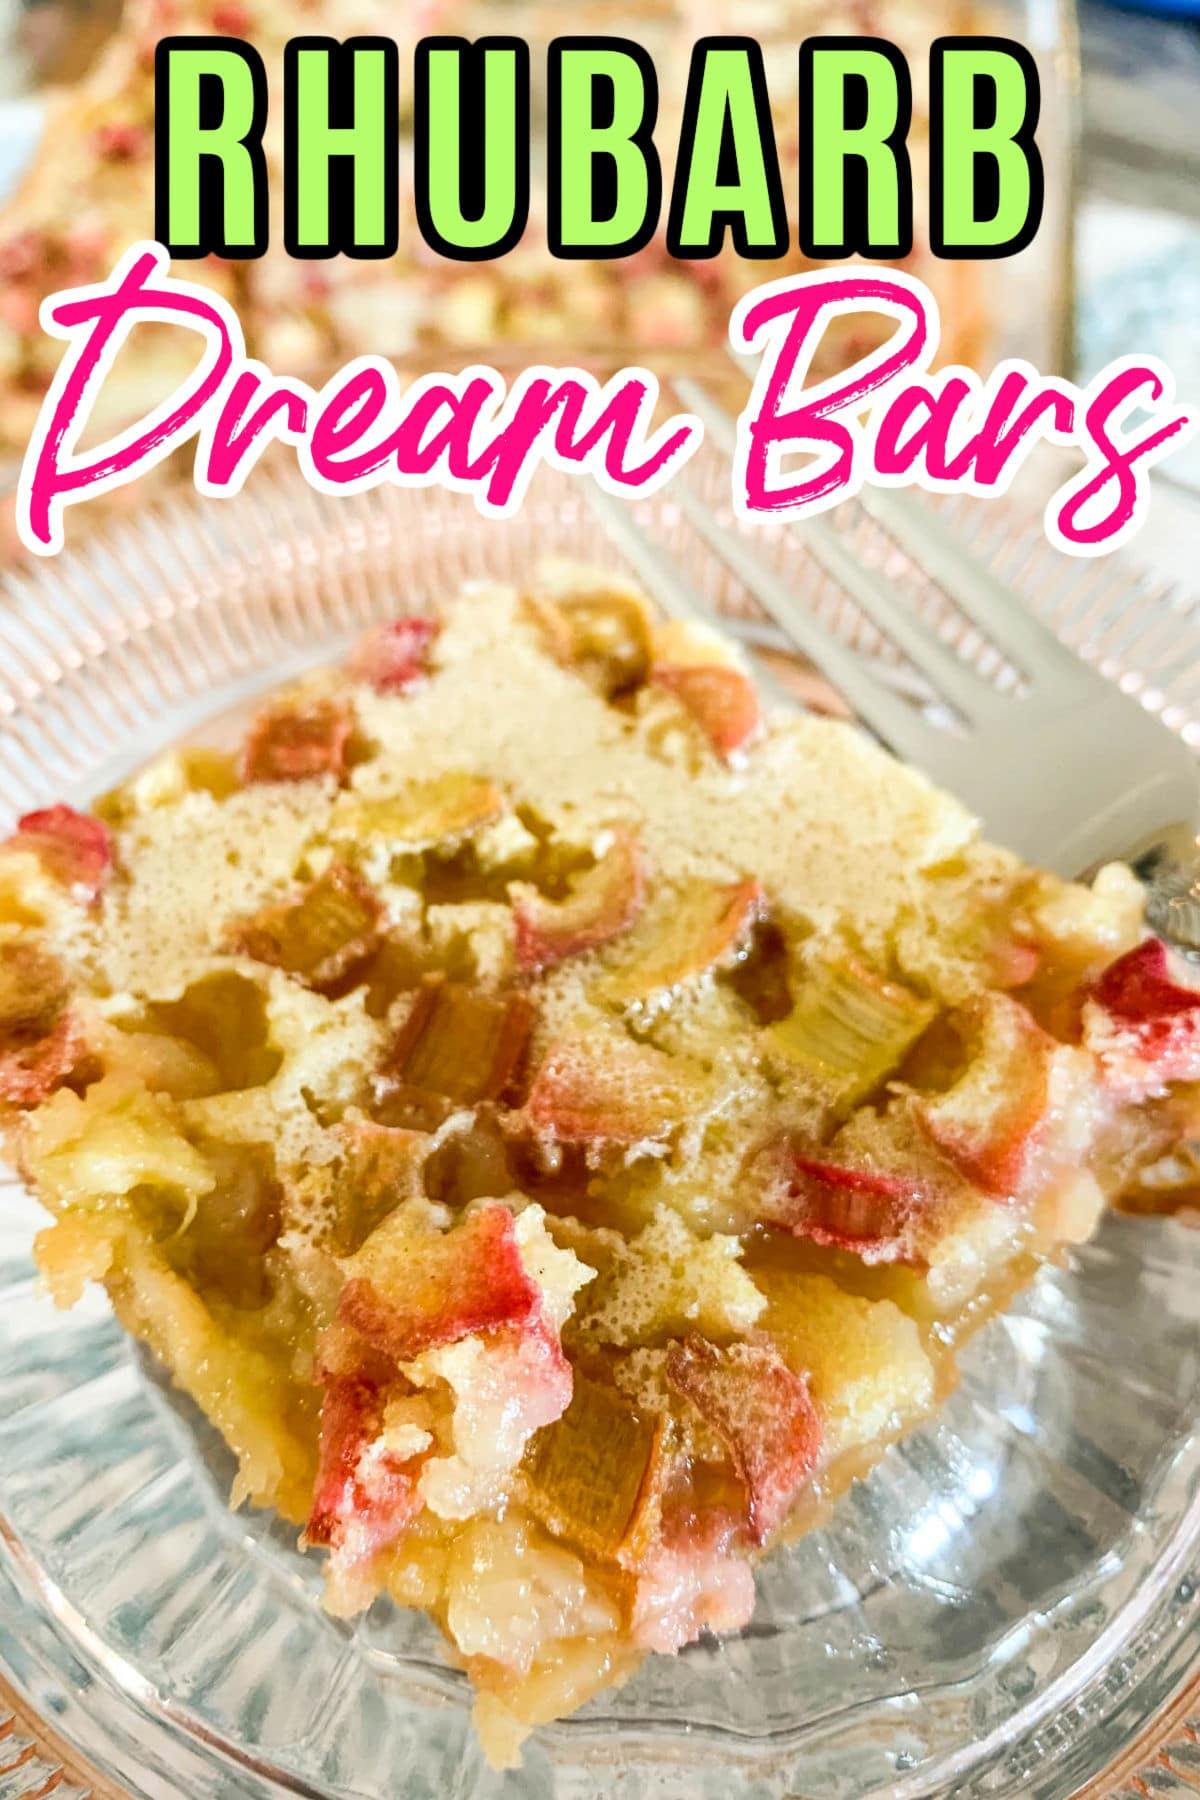 Rhubarb Dream Bars are the perfect early summer treat! The rhubarb is ripe and you just need a little bite of sweetness after a day of summer fun and grilling. These dream bars go together in just a few minutes and they are delicious!  via @foodhussy